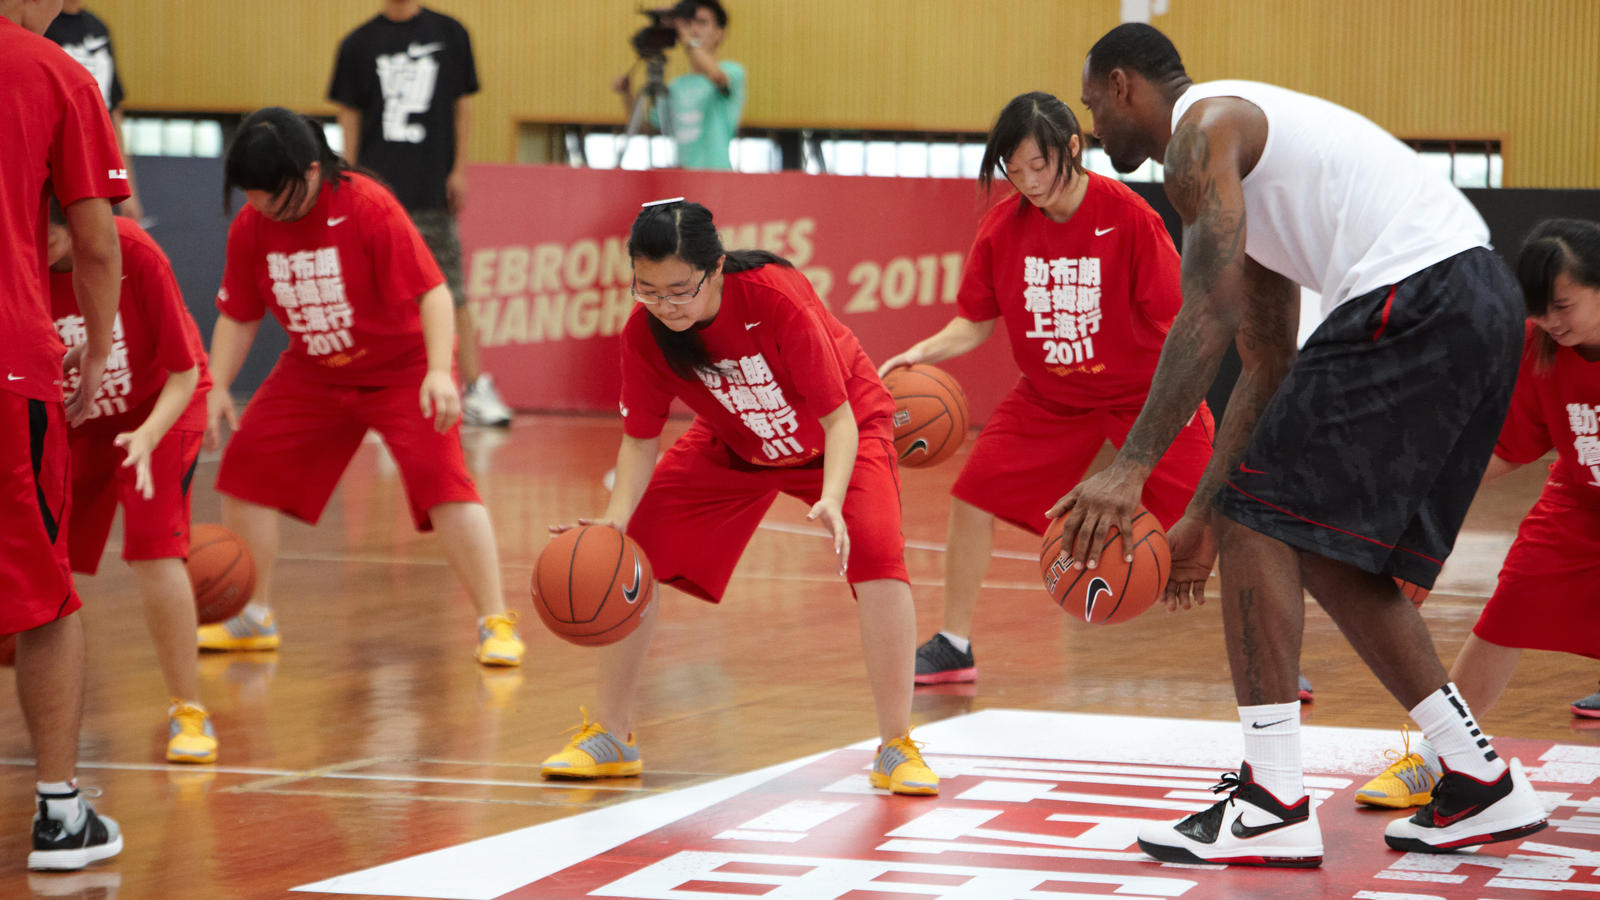 The 2011 LeBron James Greater China Tour wrapped up